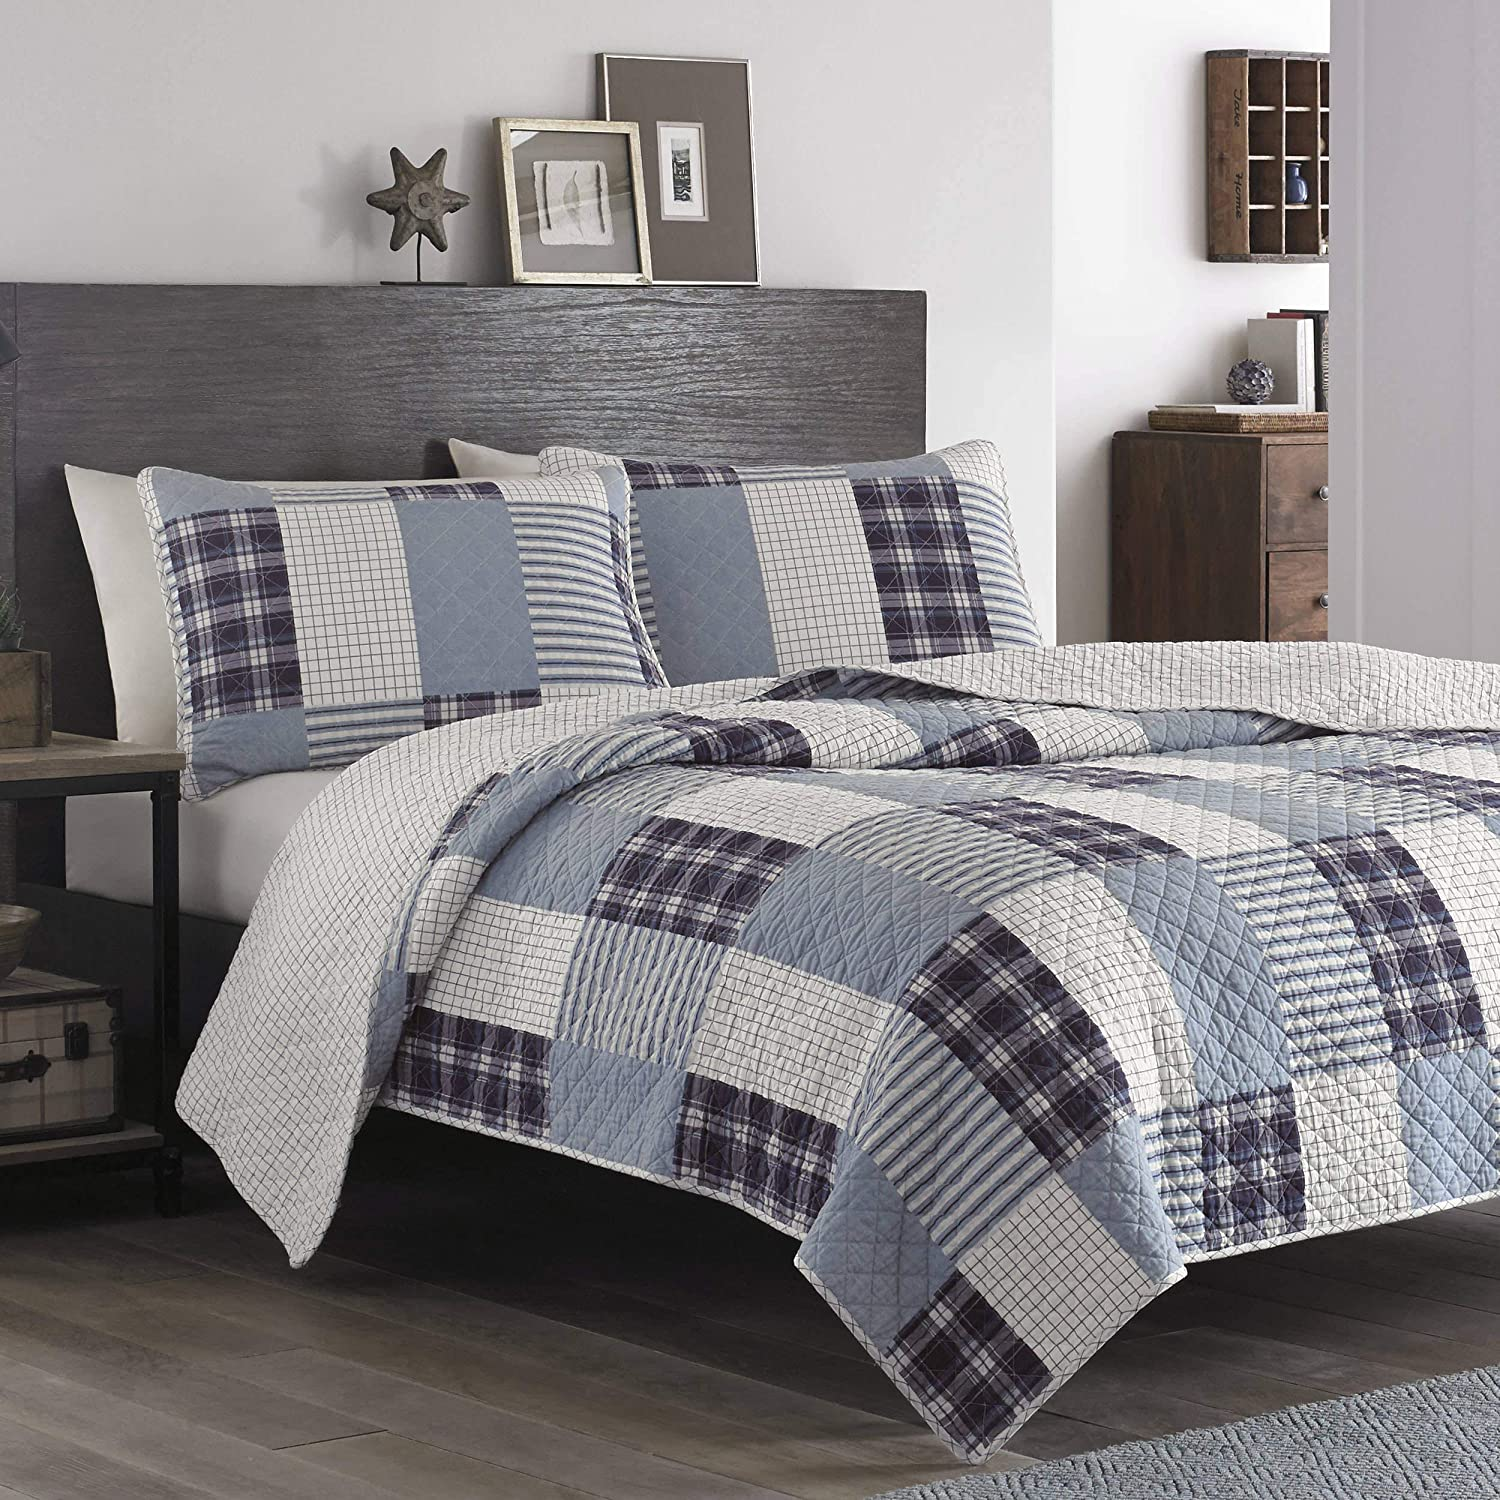 Amazon Com Eddie Bauer Camino Island Collection 100 Cotton Reversible Light Weight Quilt Bedspread With Matching Shams 3 Piece Bedding Set Pre Washed For Extra Comfort King Plum Home Kitchen